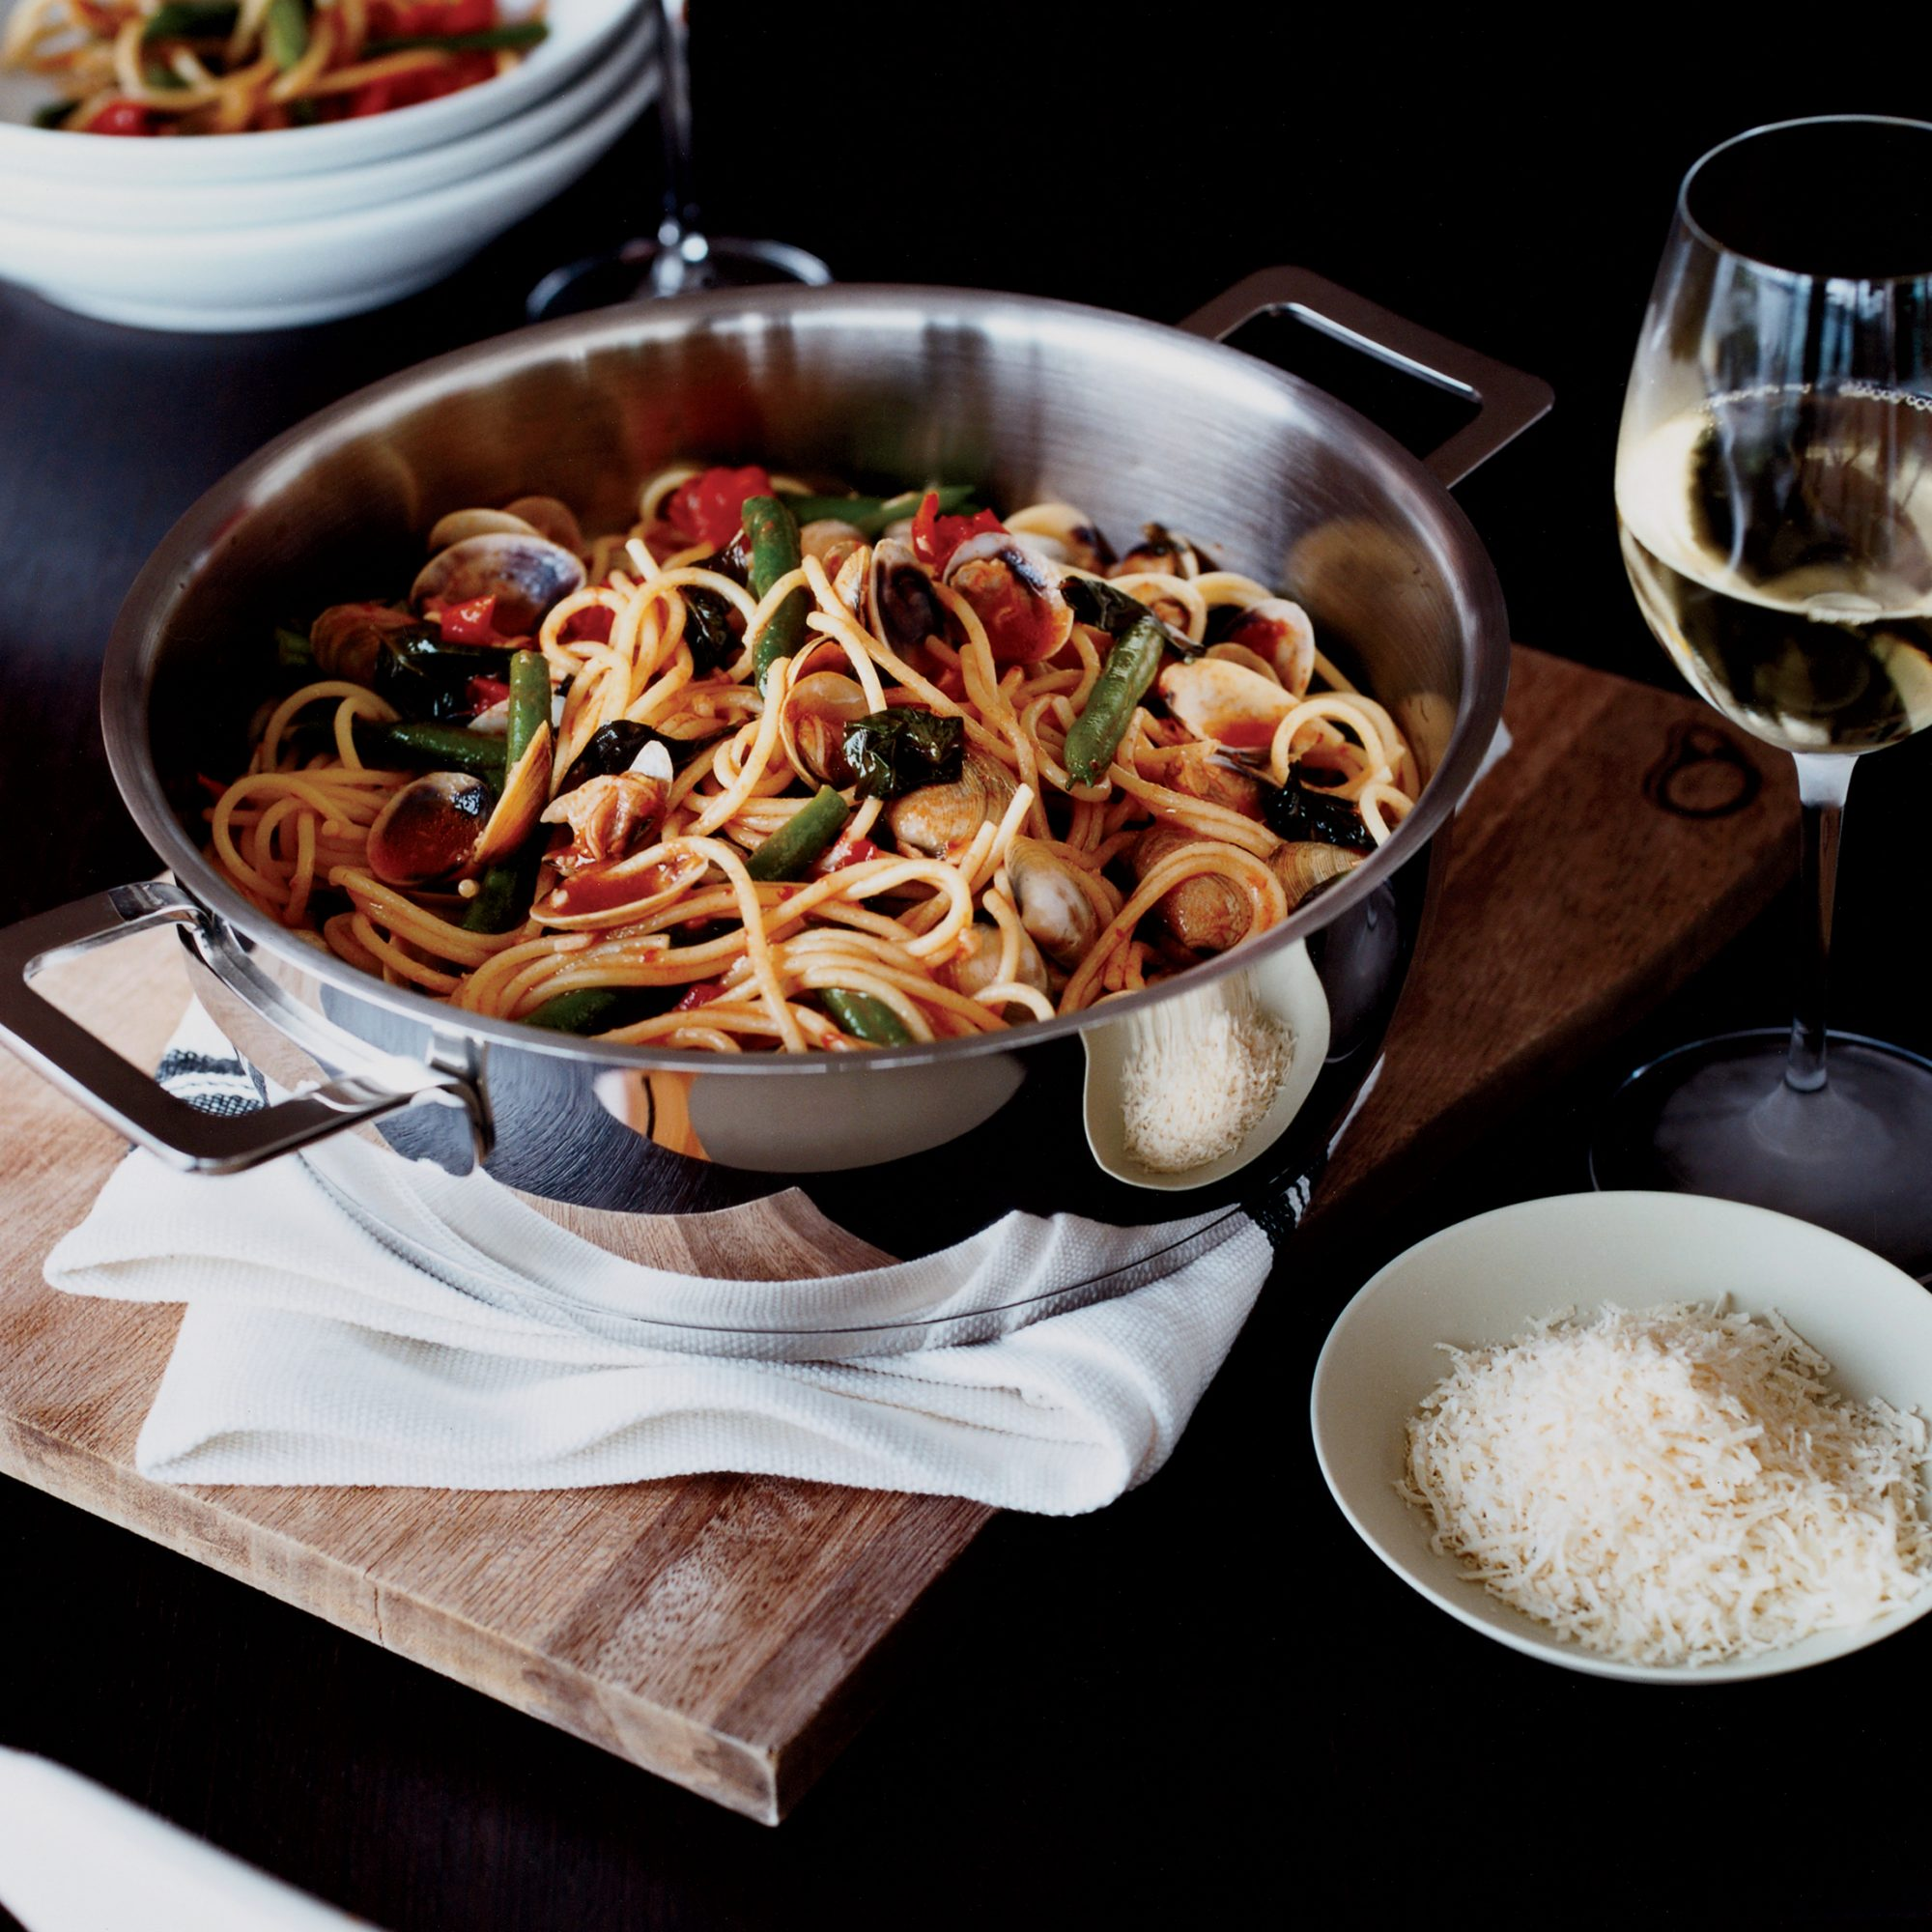 Spaghetti with Clams and Green Beans